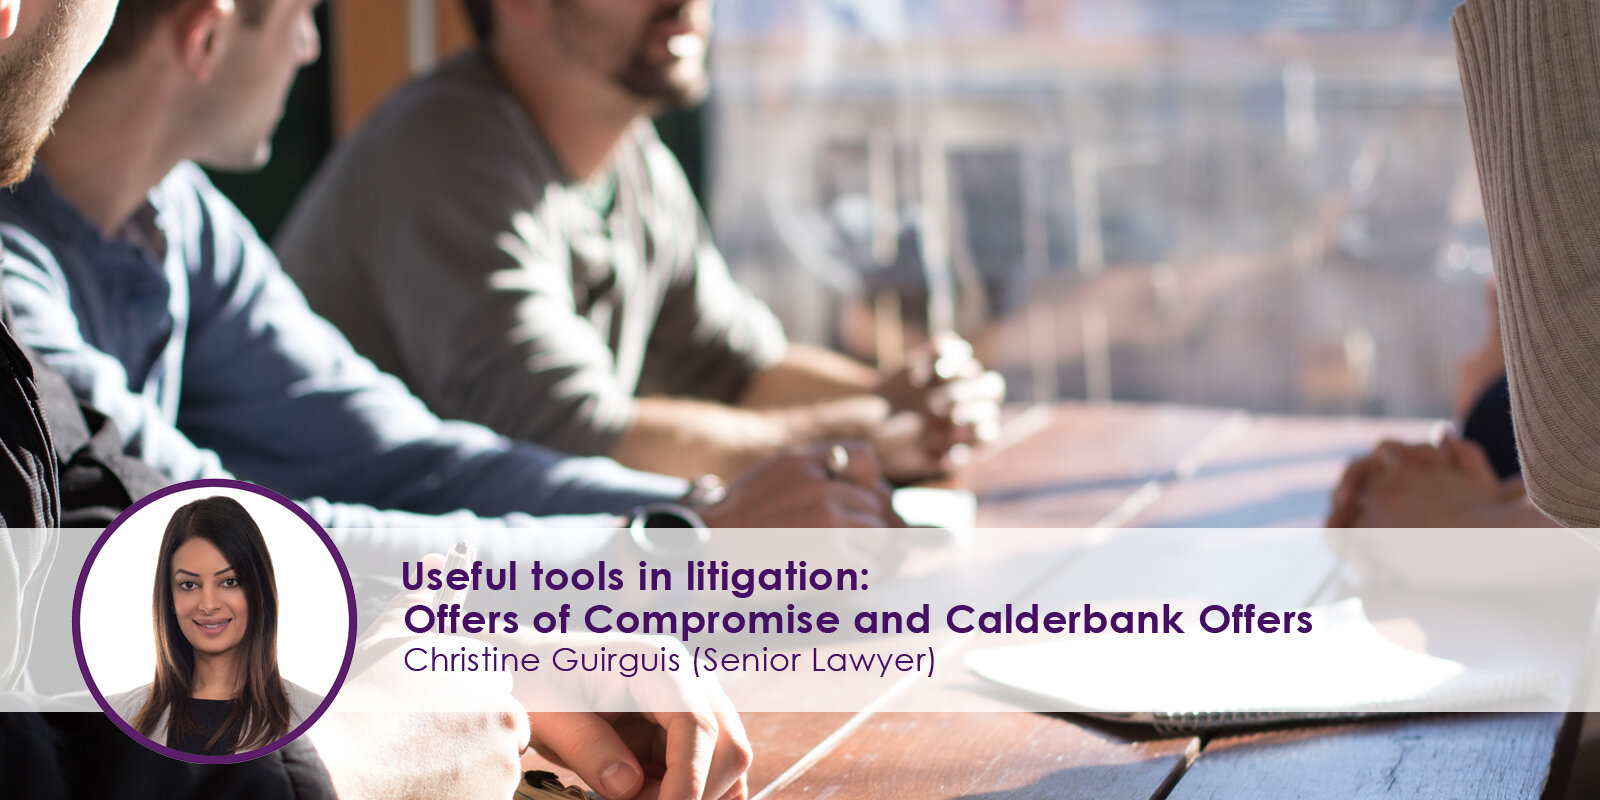 Useful-tools-in-litigation-Offers-of-Compromise-and-Calderbank-Offers.jpg